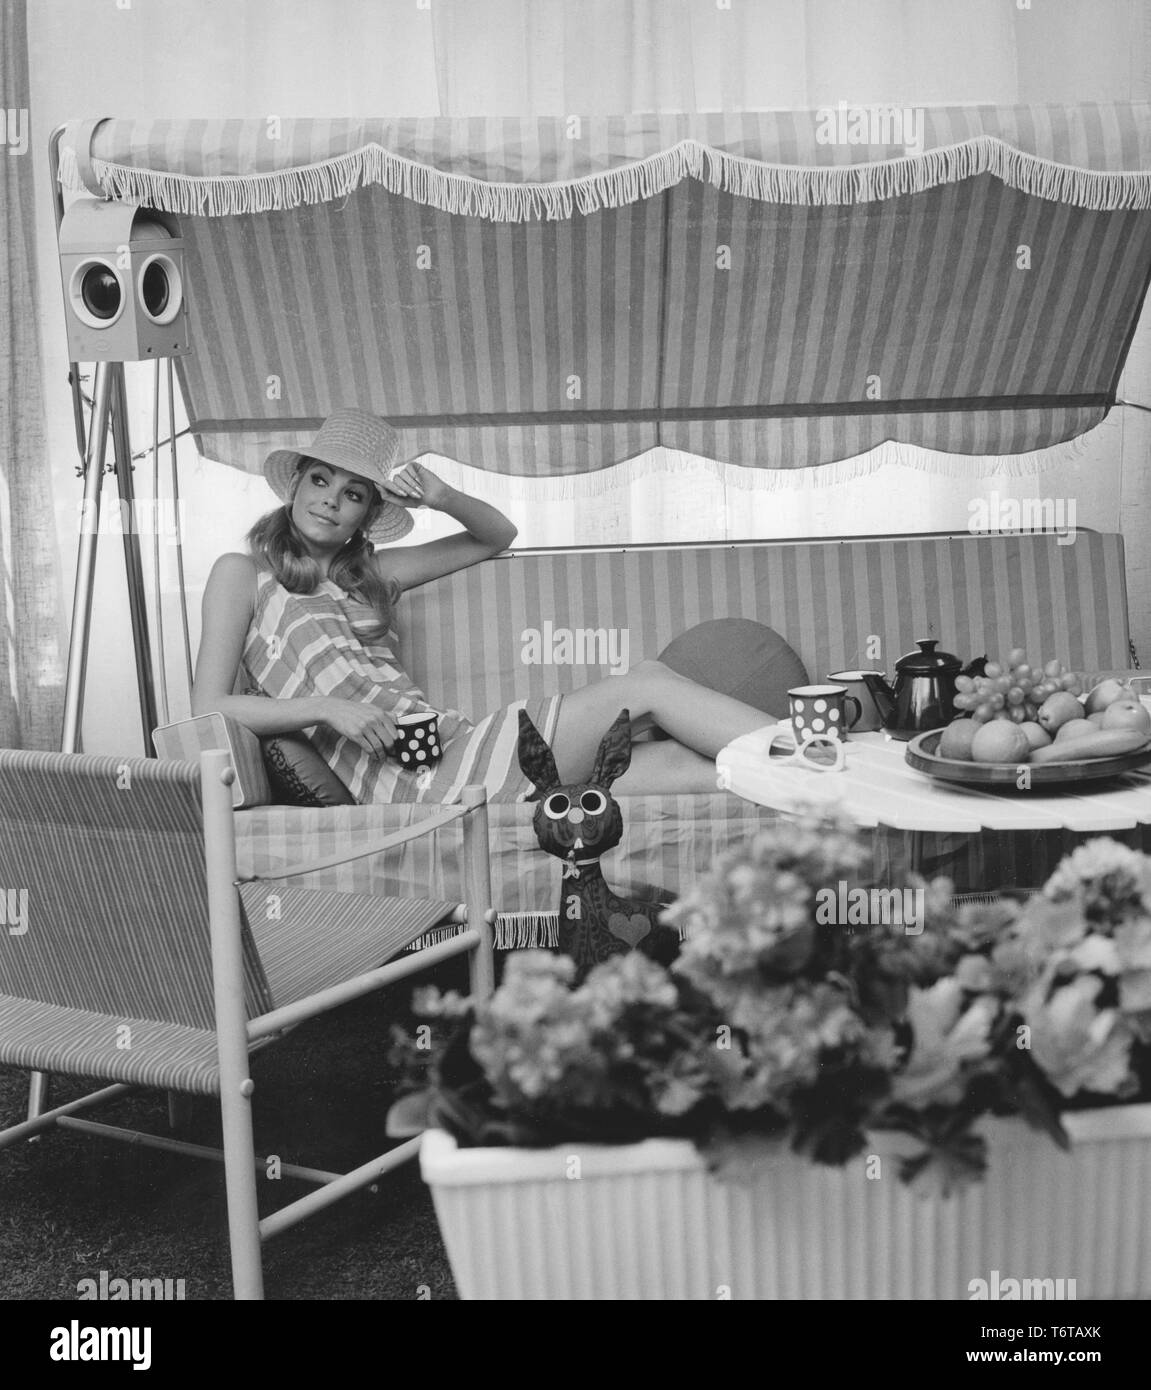 Summer of the 1960s. A young woman is sitting comforably in a hammock drinking coffe. The design of the furniture and her dress represents the 1960s decade very well. Sweden 1960s Stock Photo